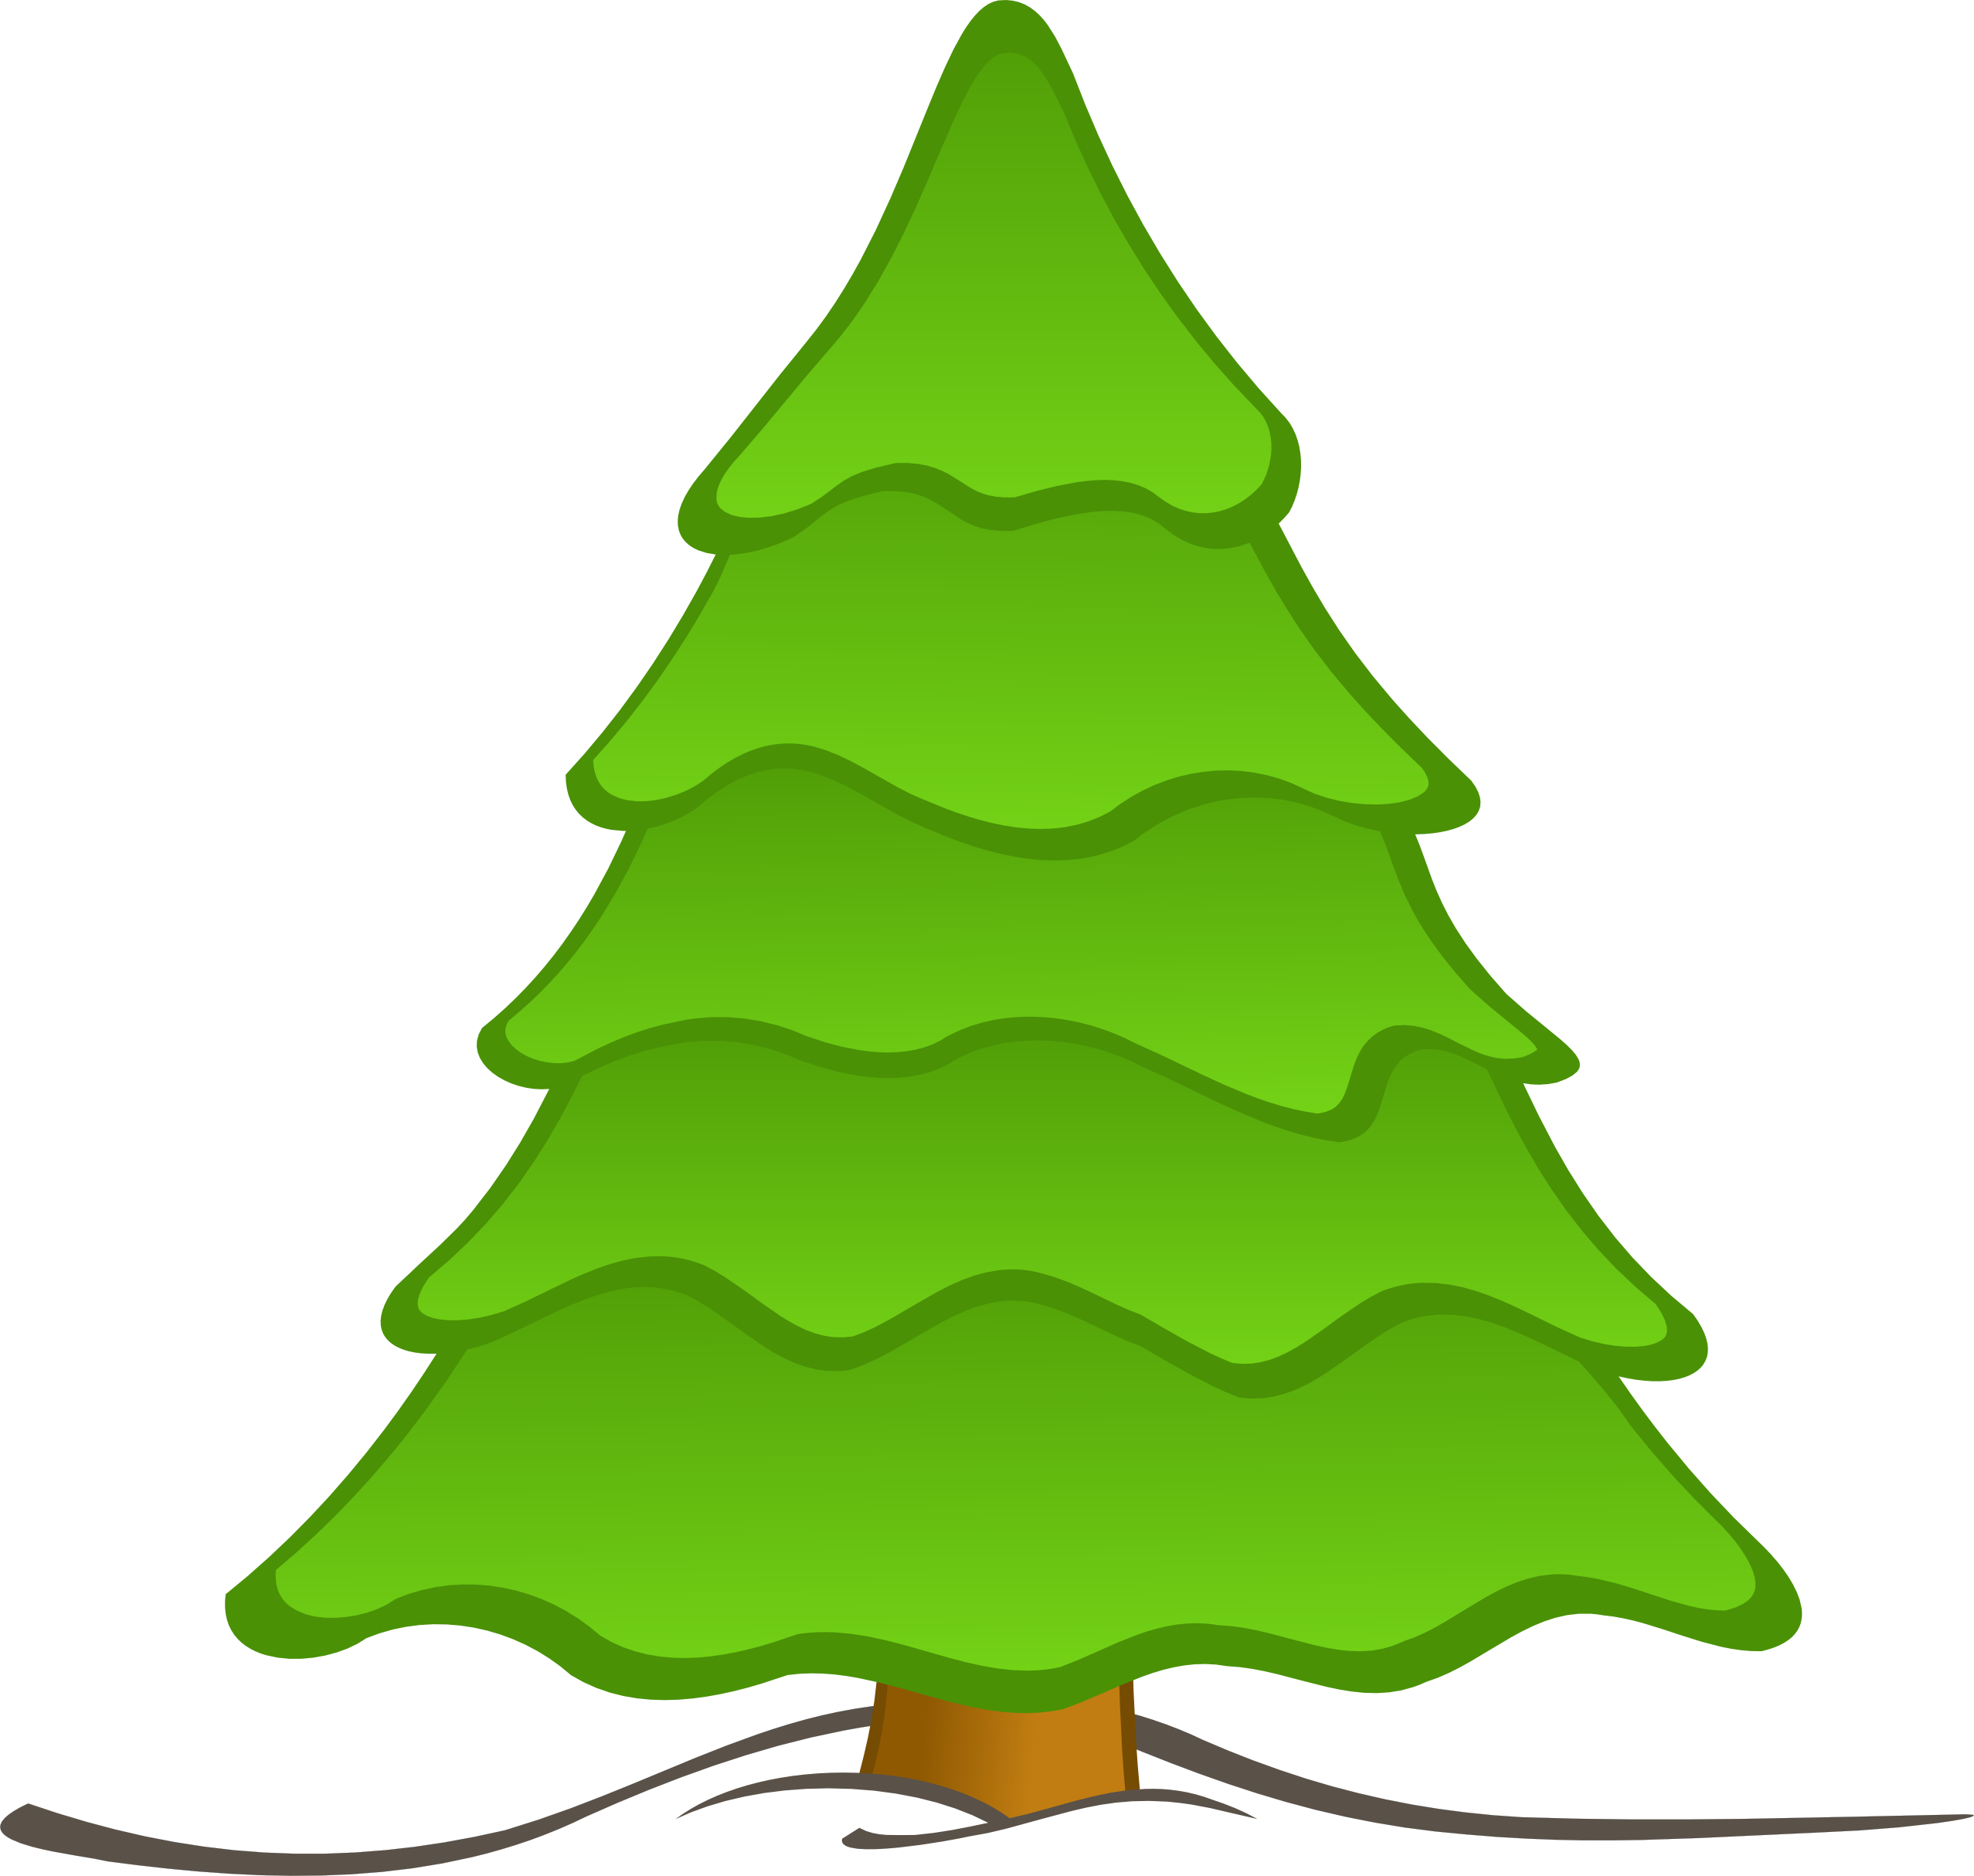 2555x2428 Christmas Tree Clipart Leaves